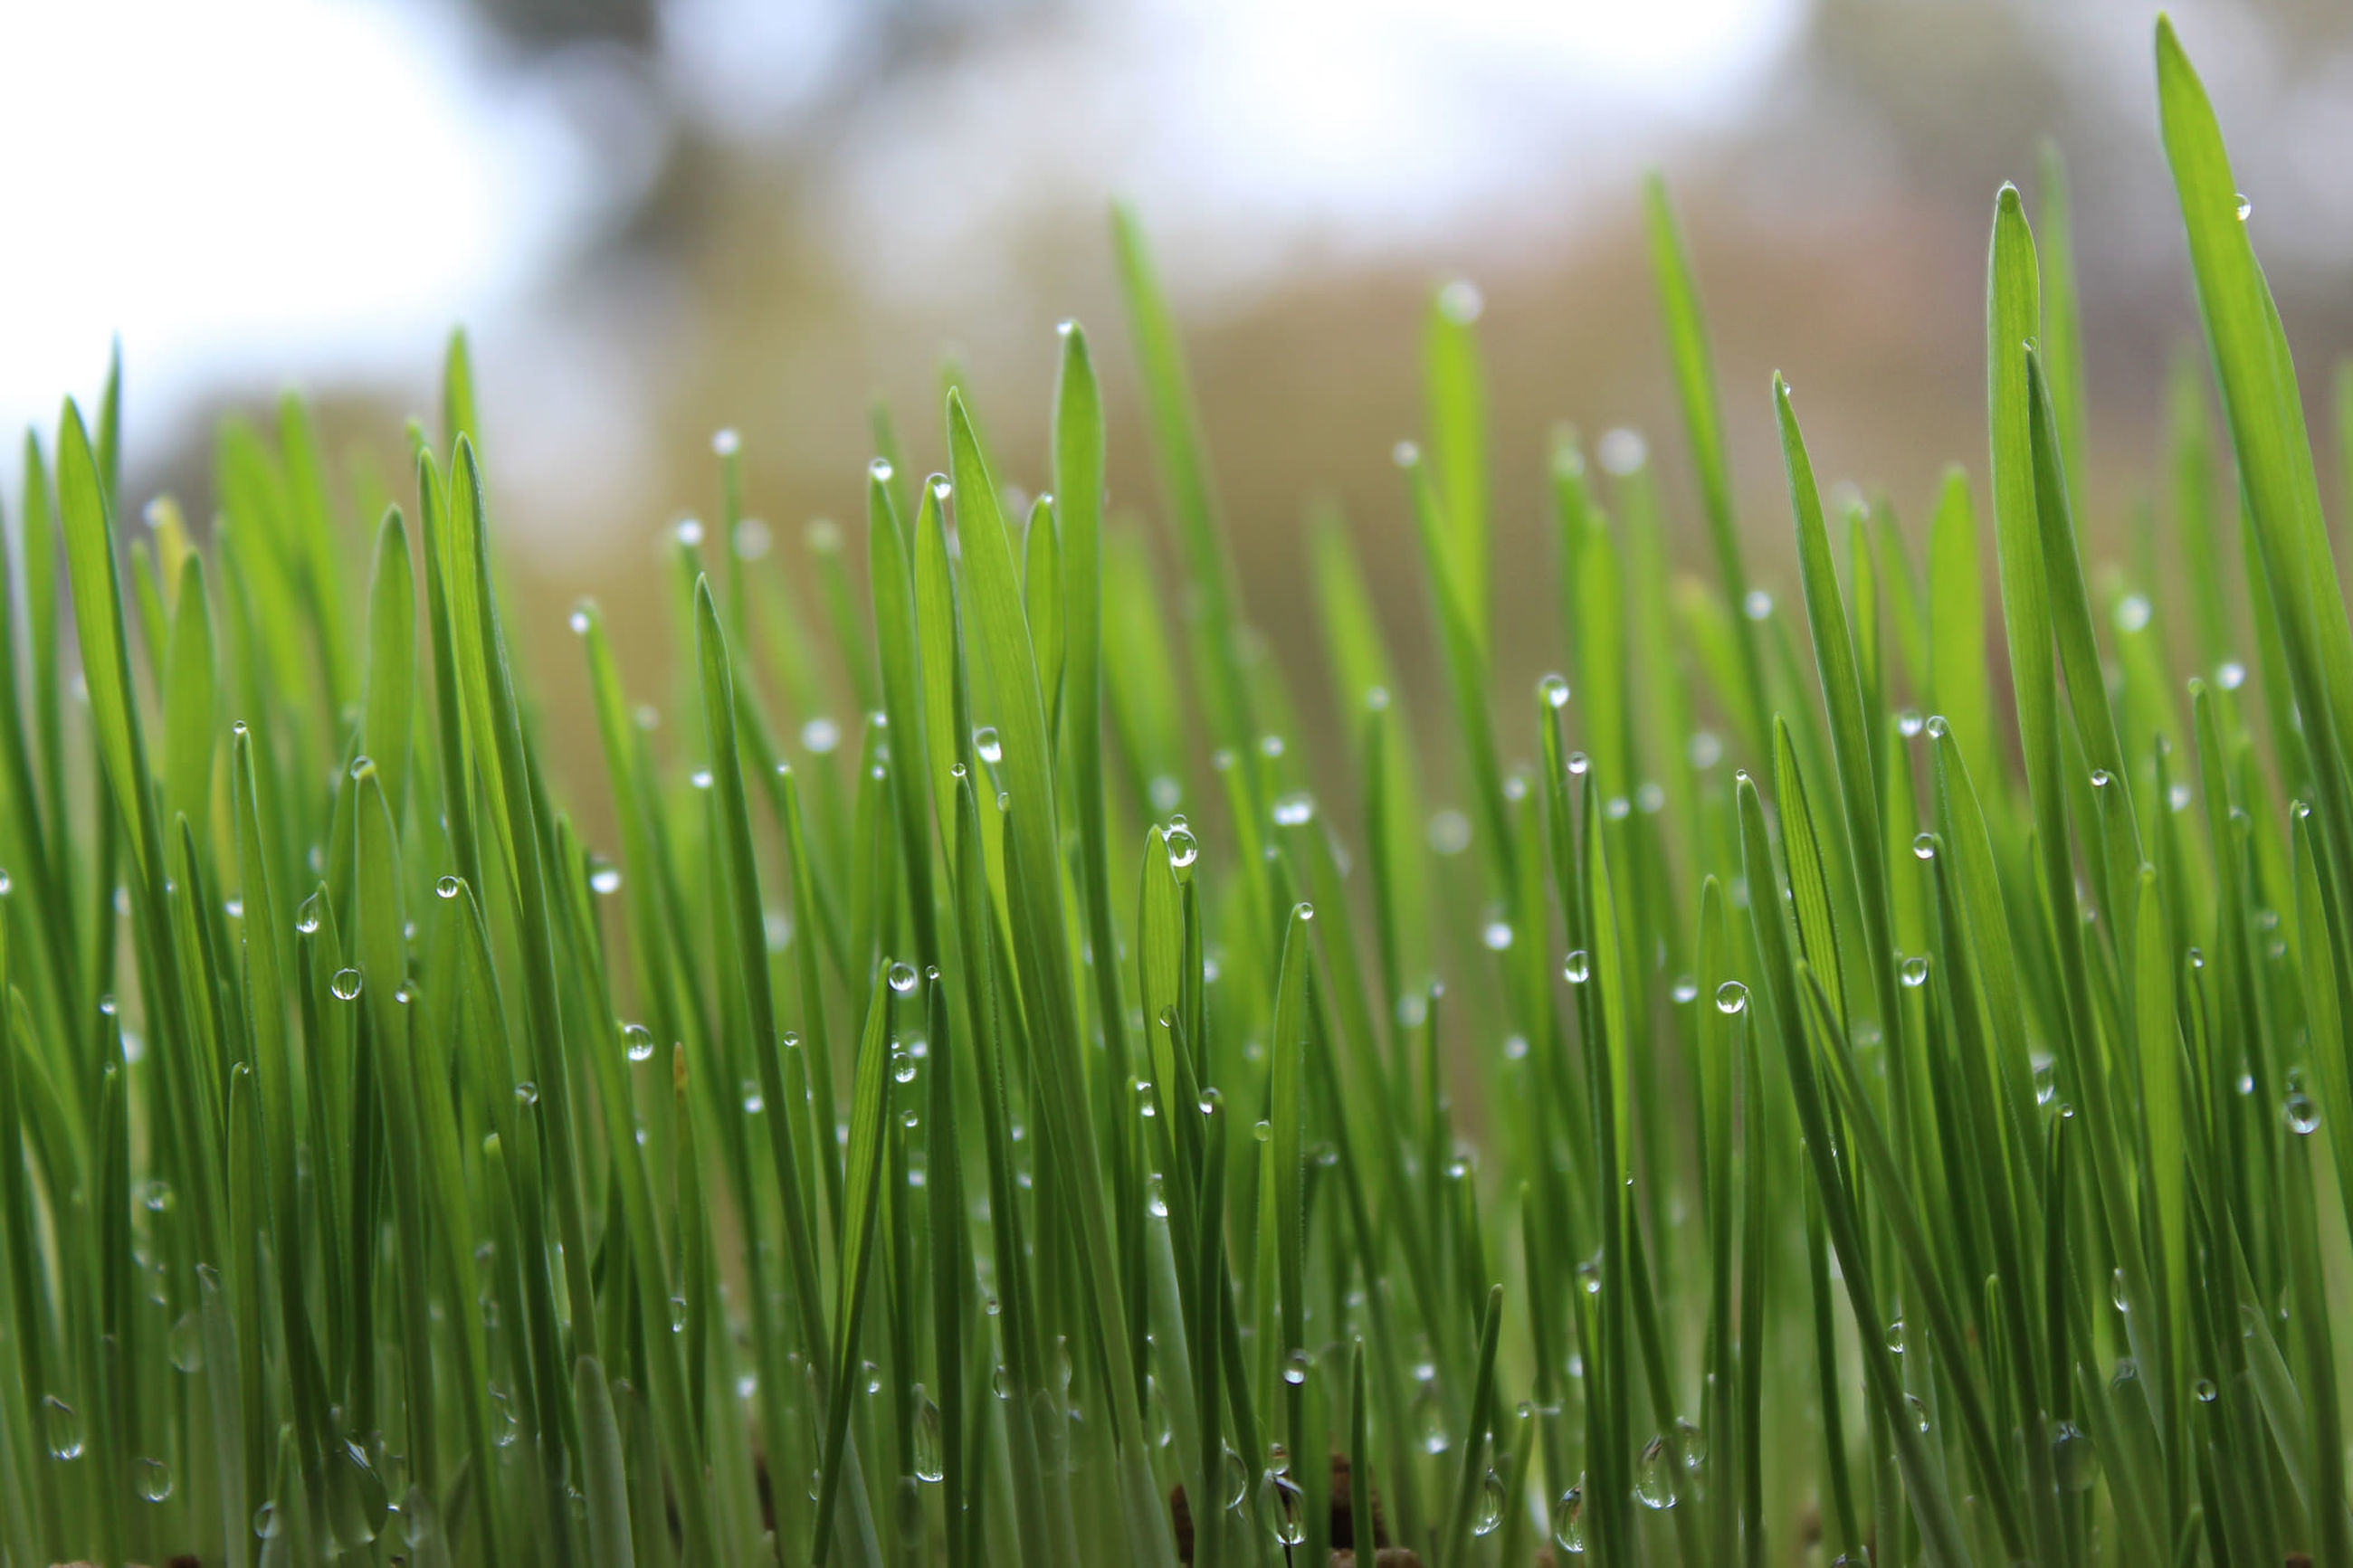 green color, growth, nature, drop, no people, close-up, beauty in nature, day, water, outdoors, grass, freshness